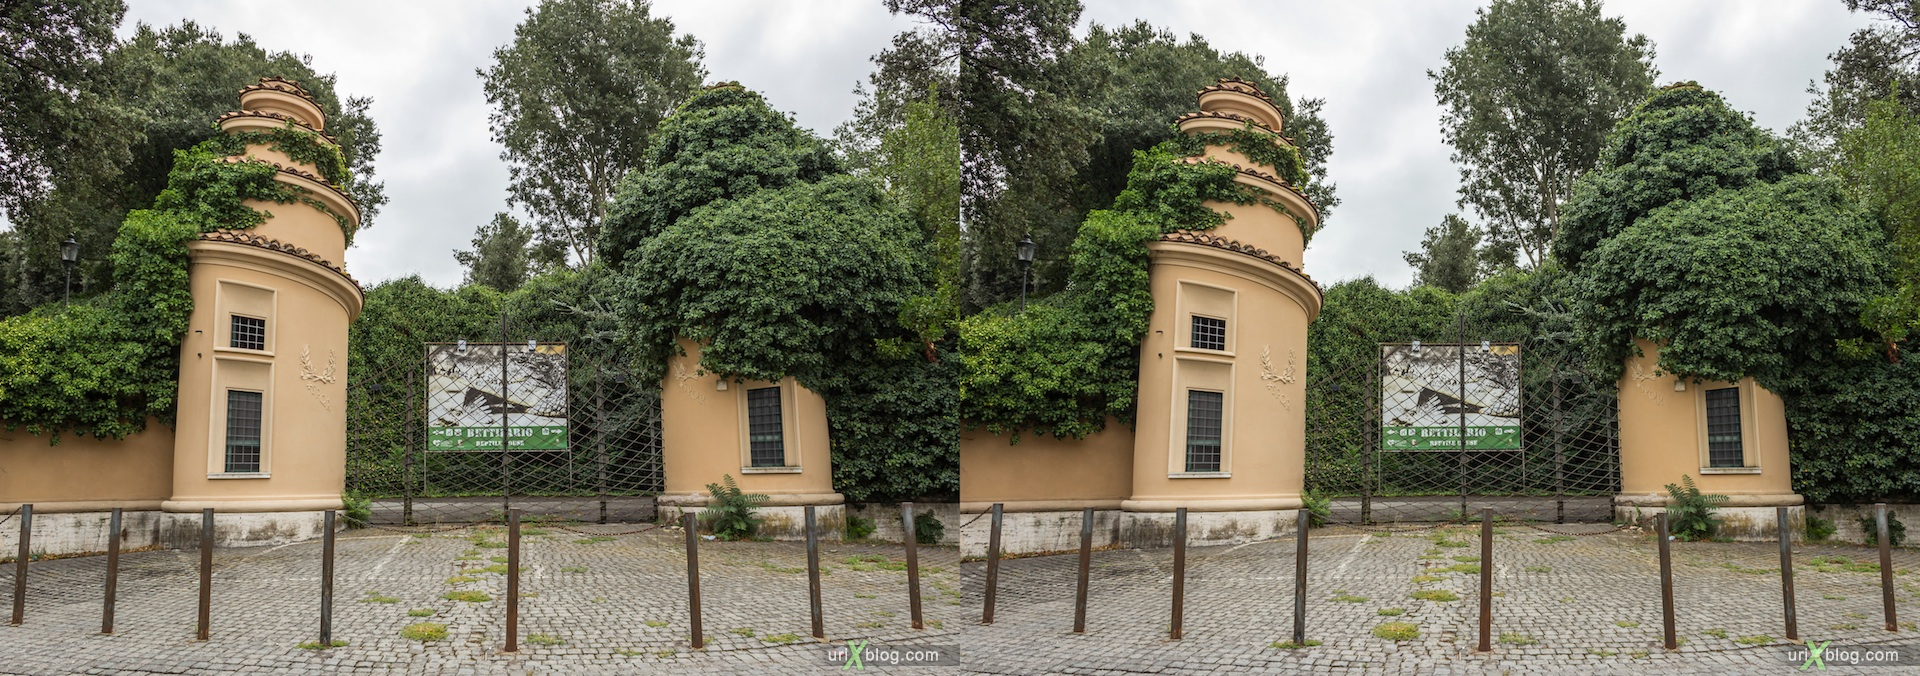 2012, park villa Borghese, Rome, Italy, 3D, stereo pair, cross-eyed, crossview, cross view stereo pair